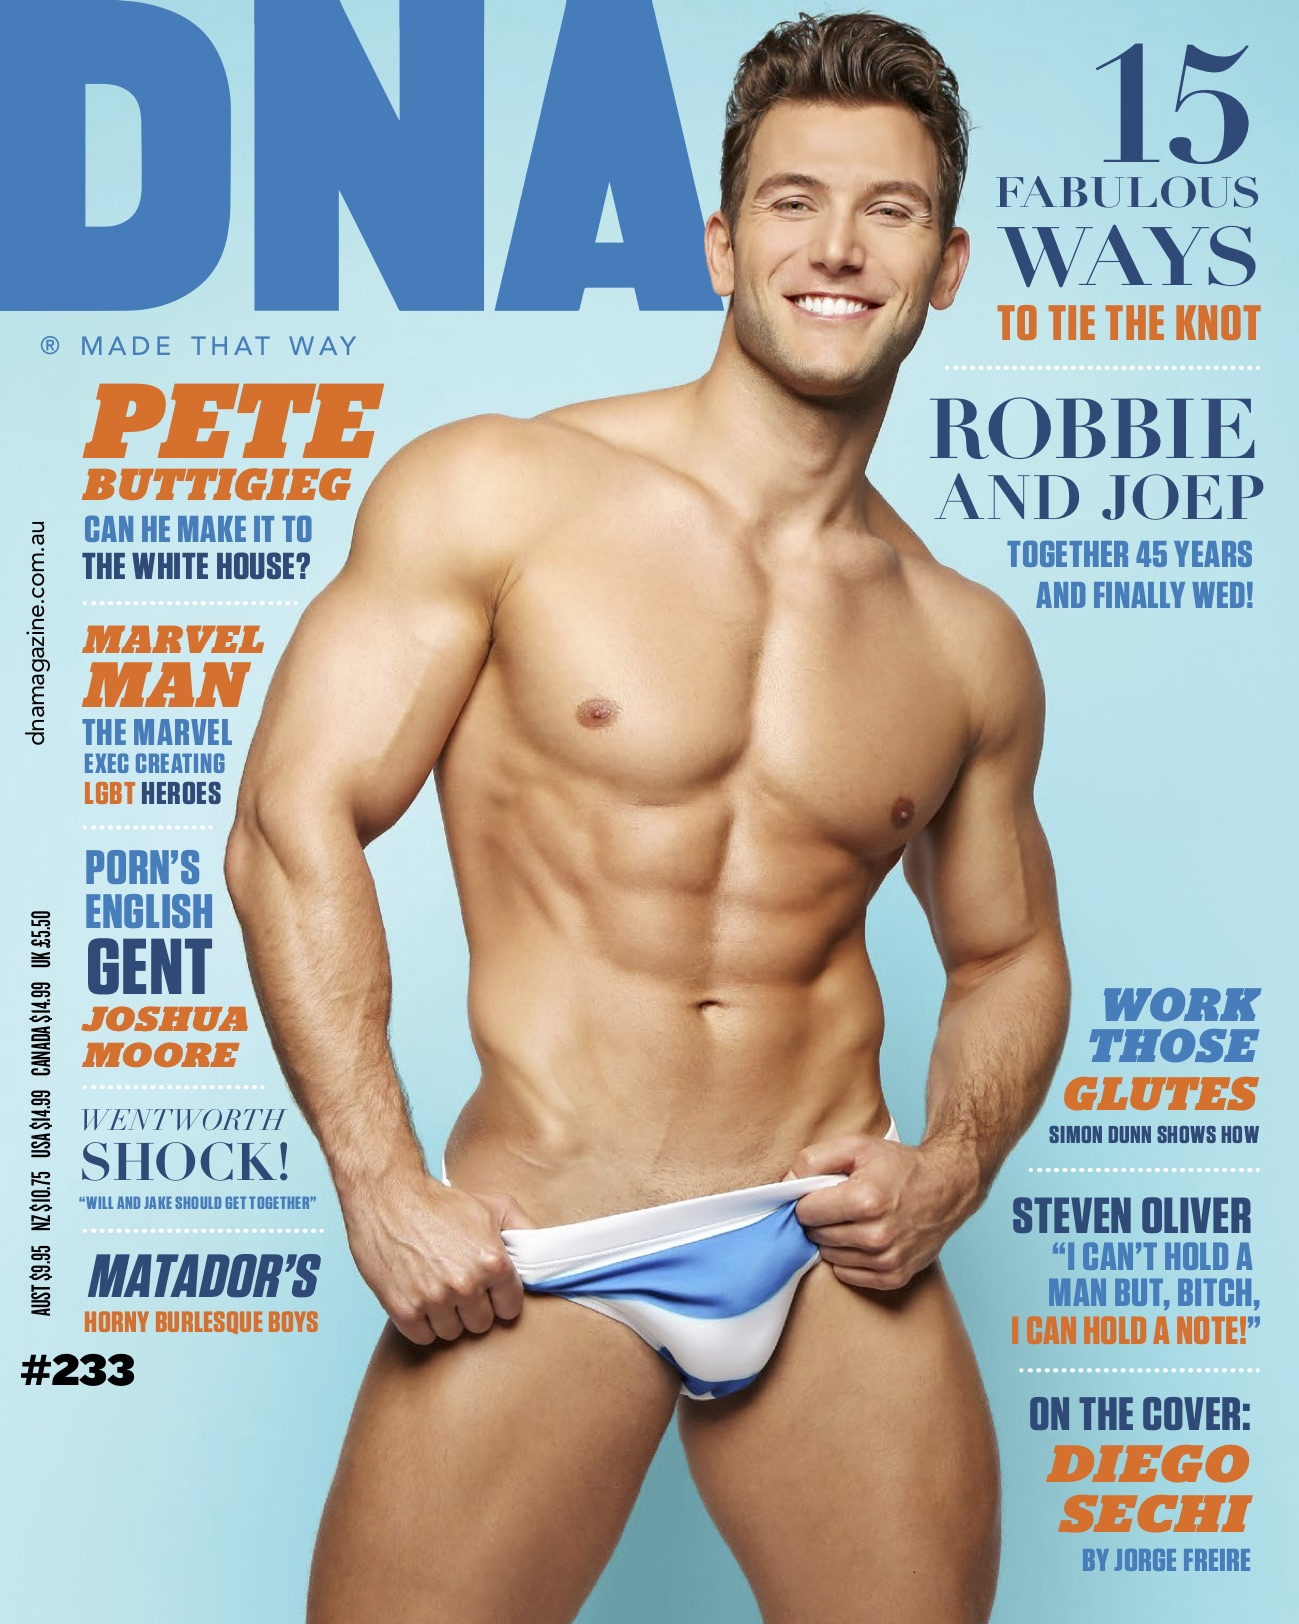 Dna Gay Porn Magazine